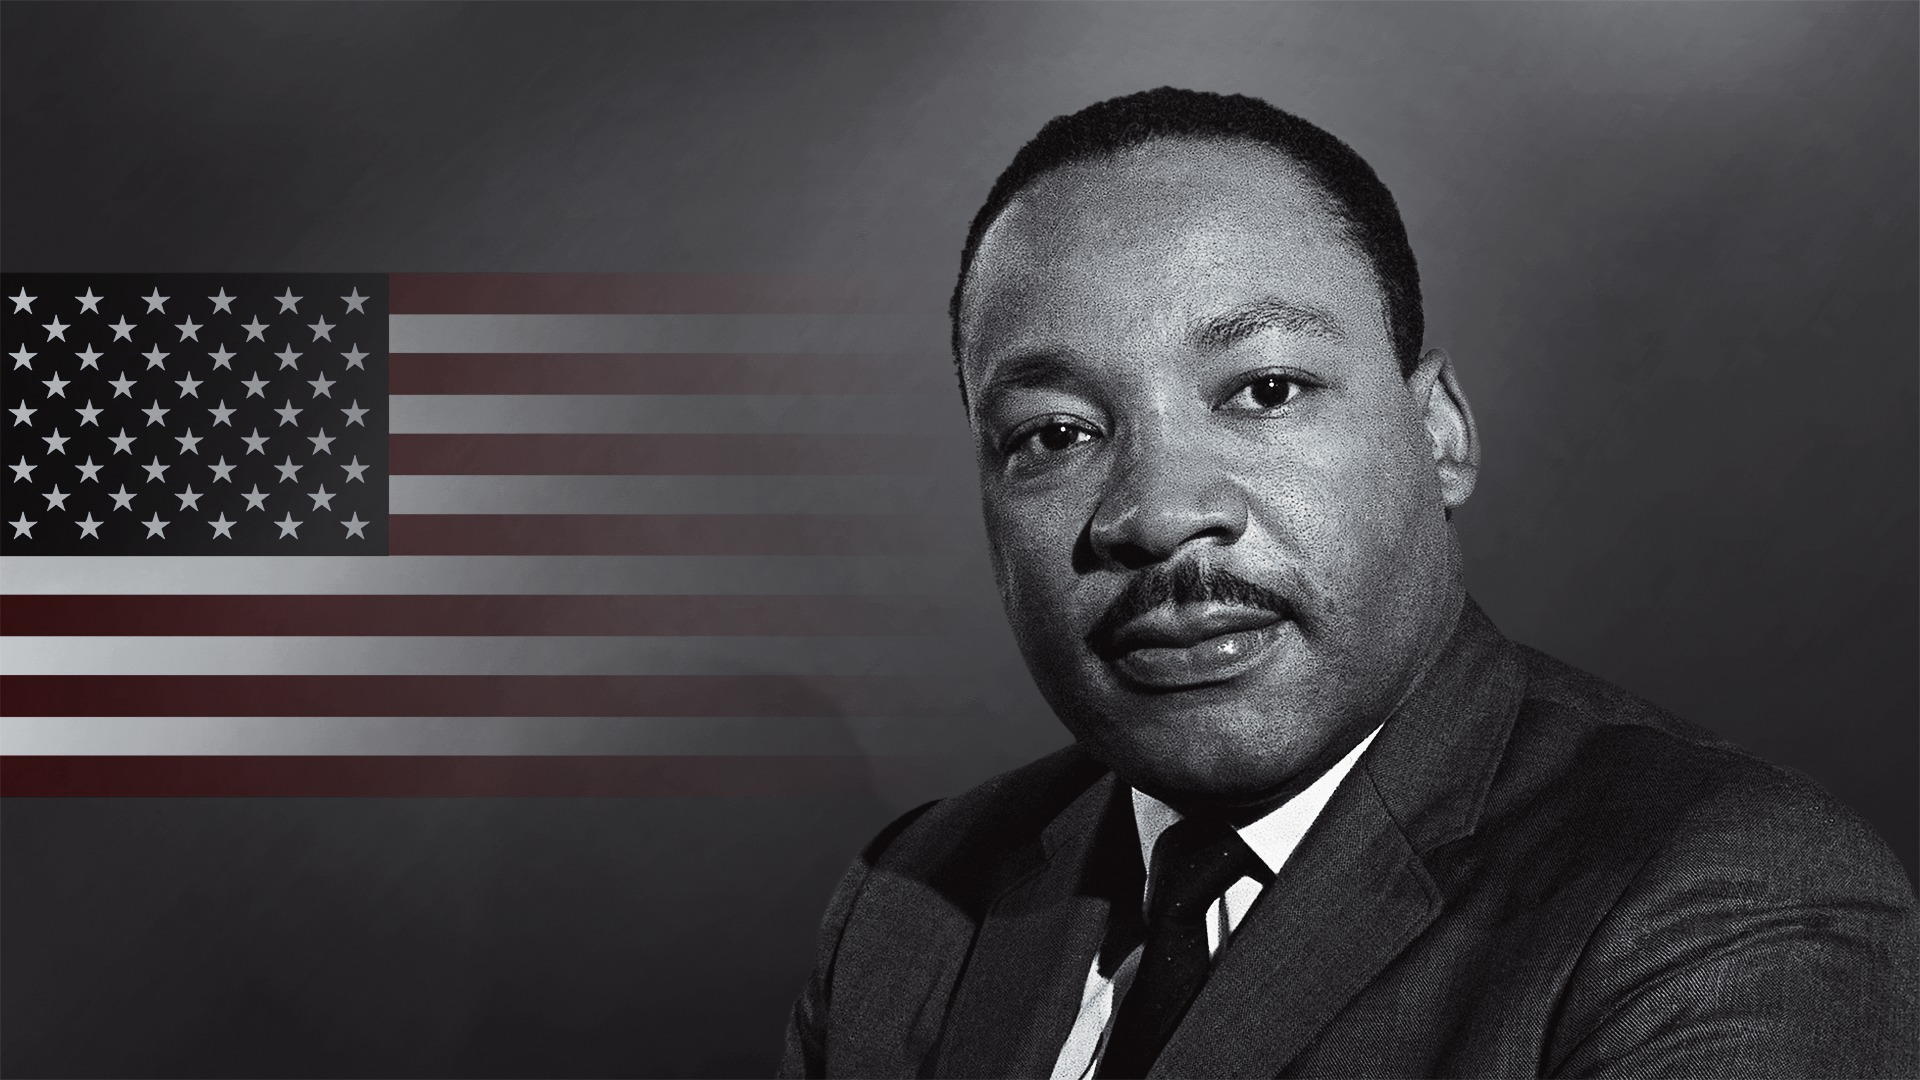 Honoring Martin Luther King Jr 1920x1080